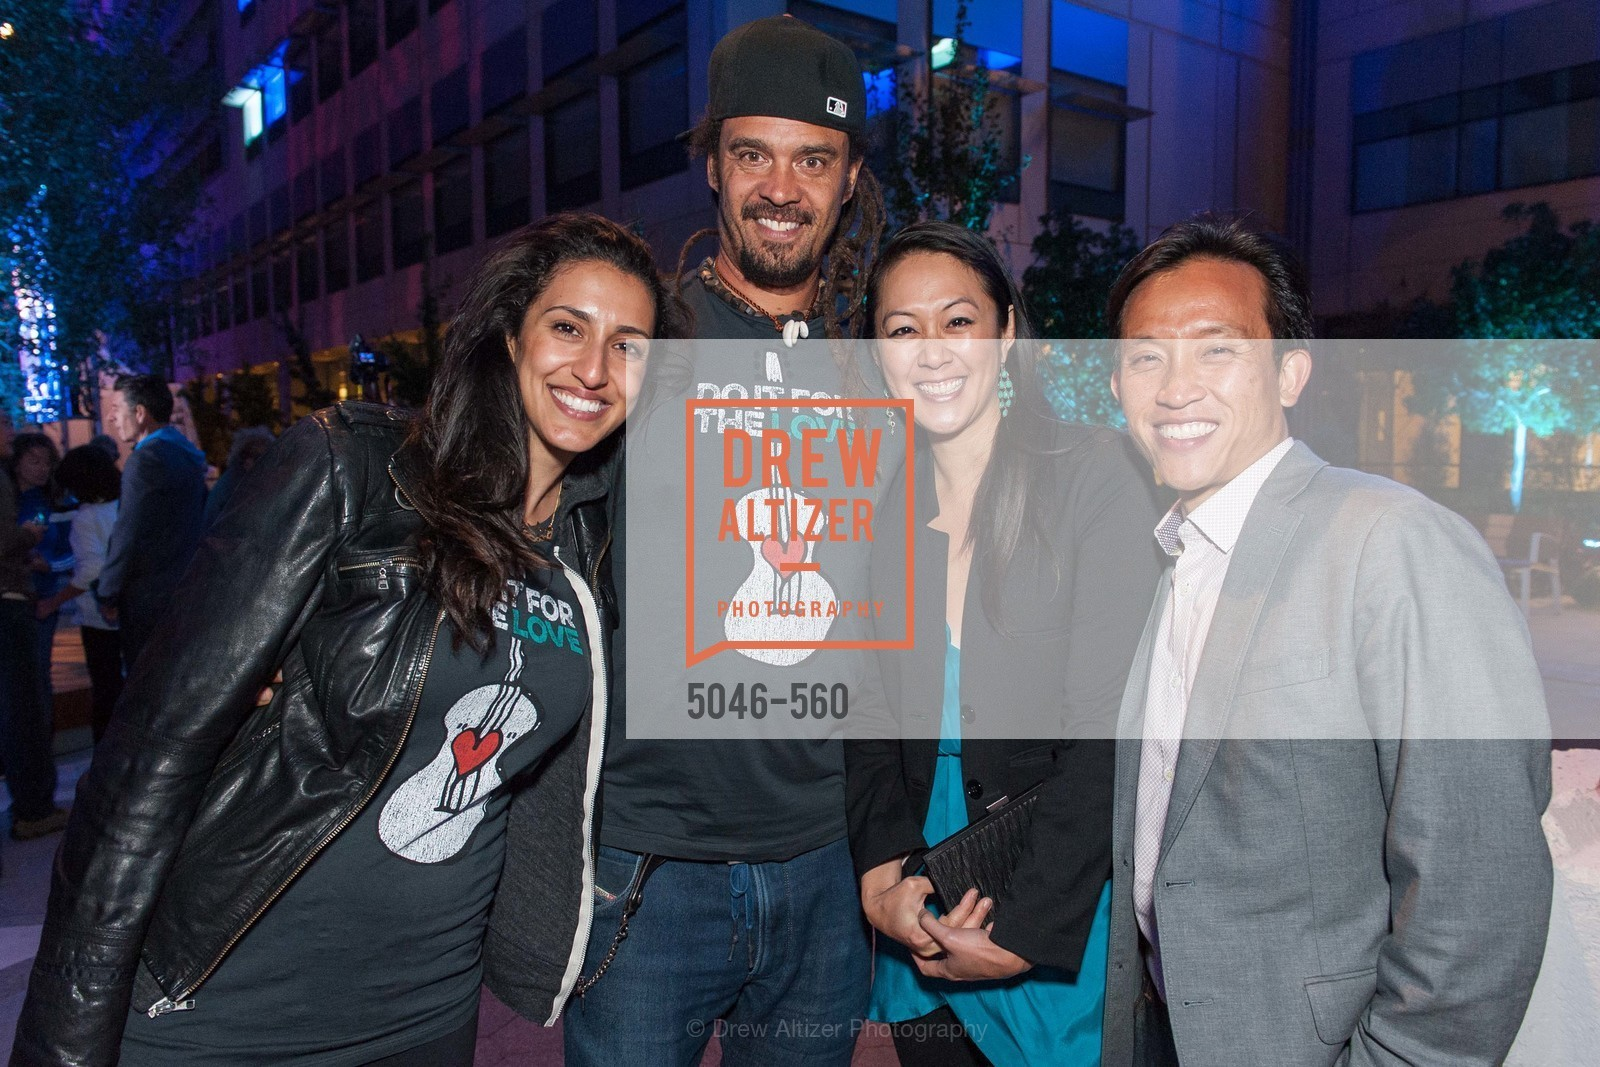 Sara Agah, Michael Franti, Candace Chen, David Chiu, UCSF Medical Center HARD HAT WALK & LIGHTS ON FESTIVAL, US, September 6th, 2014,Drew Altizer, Drew Altizer Photography, full-service event agency, private events, San Francisco photographer, photographer California